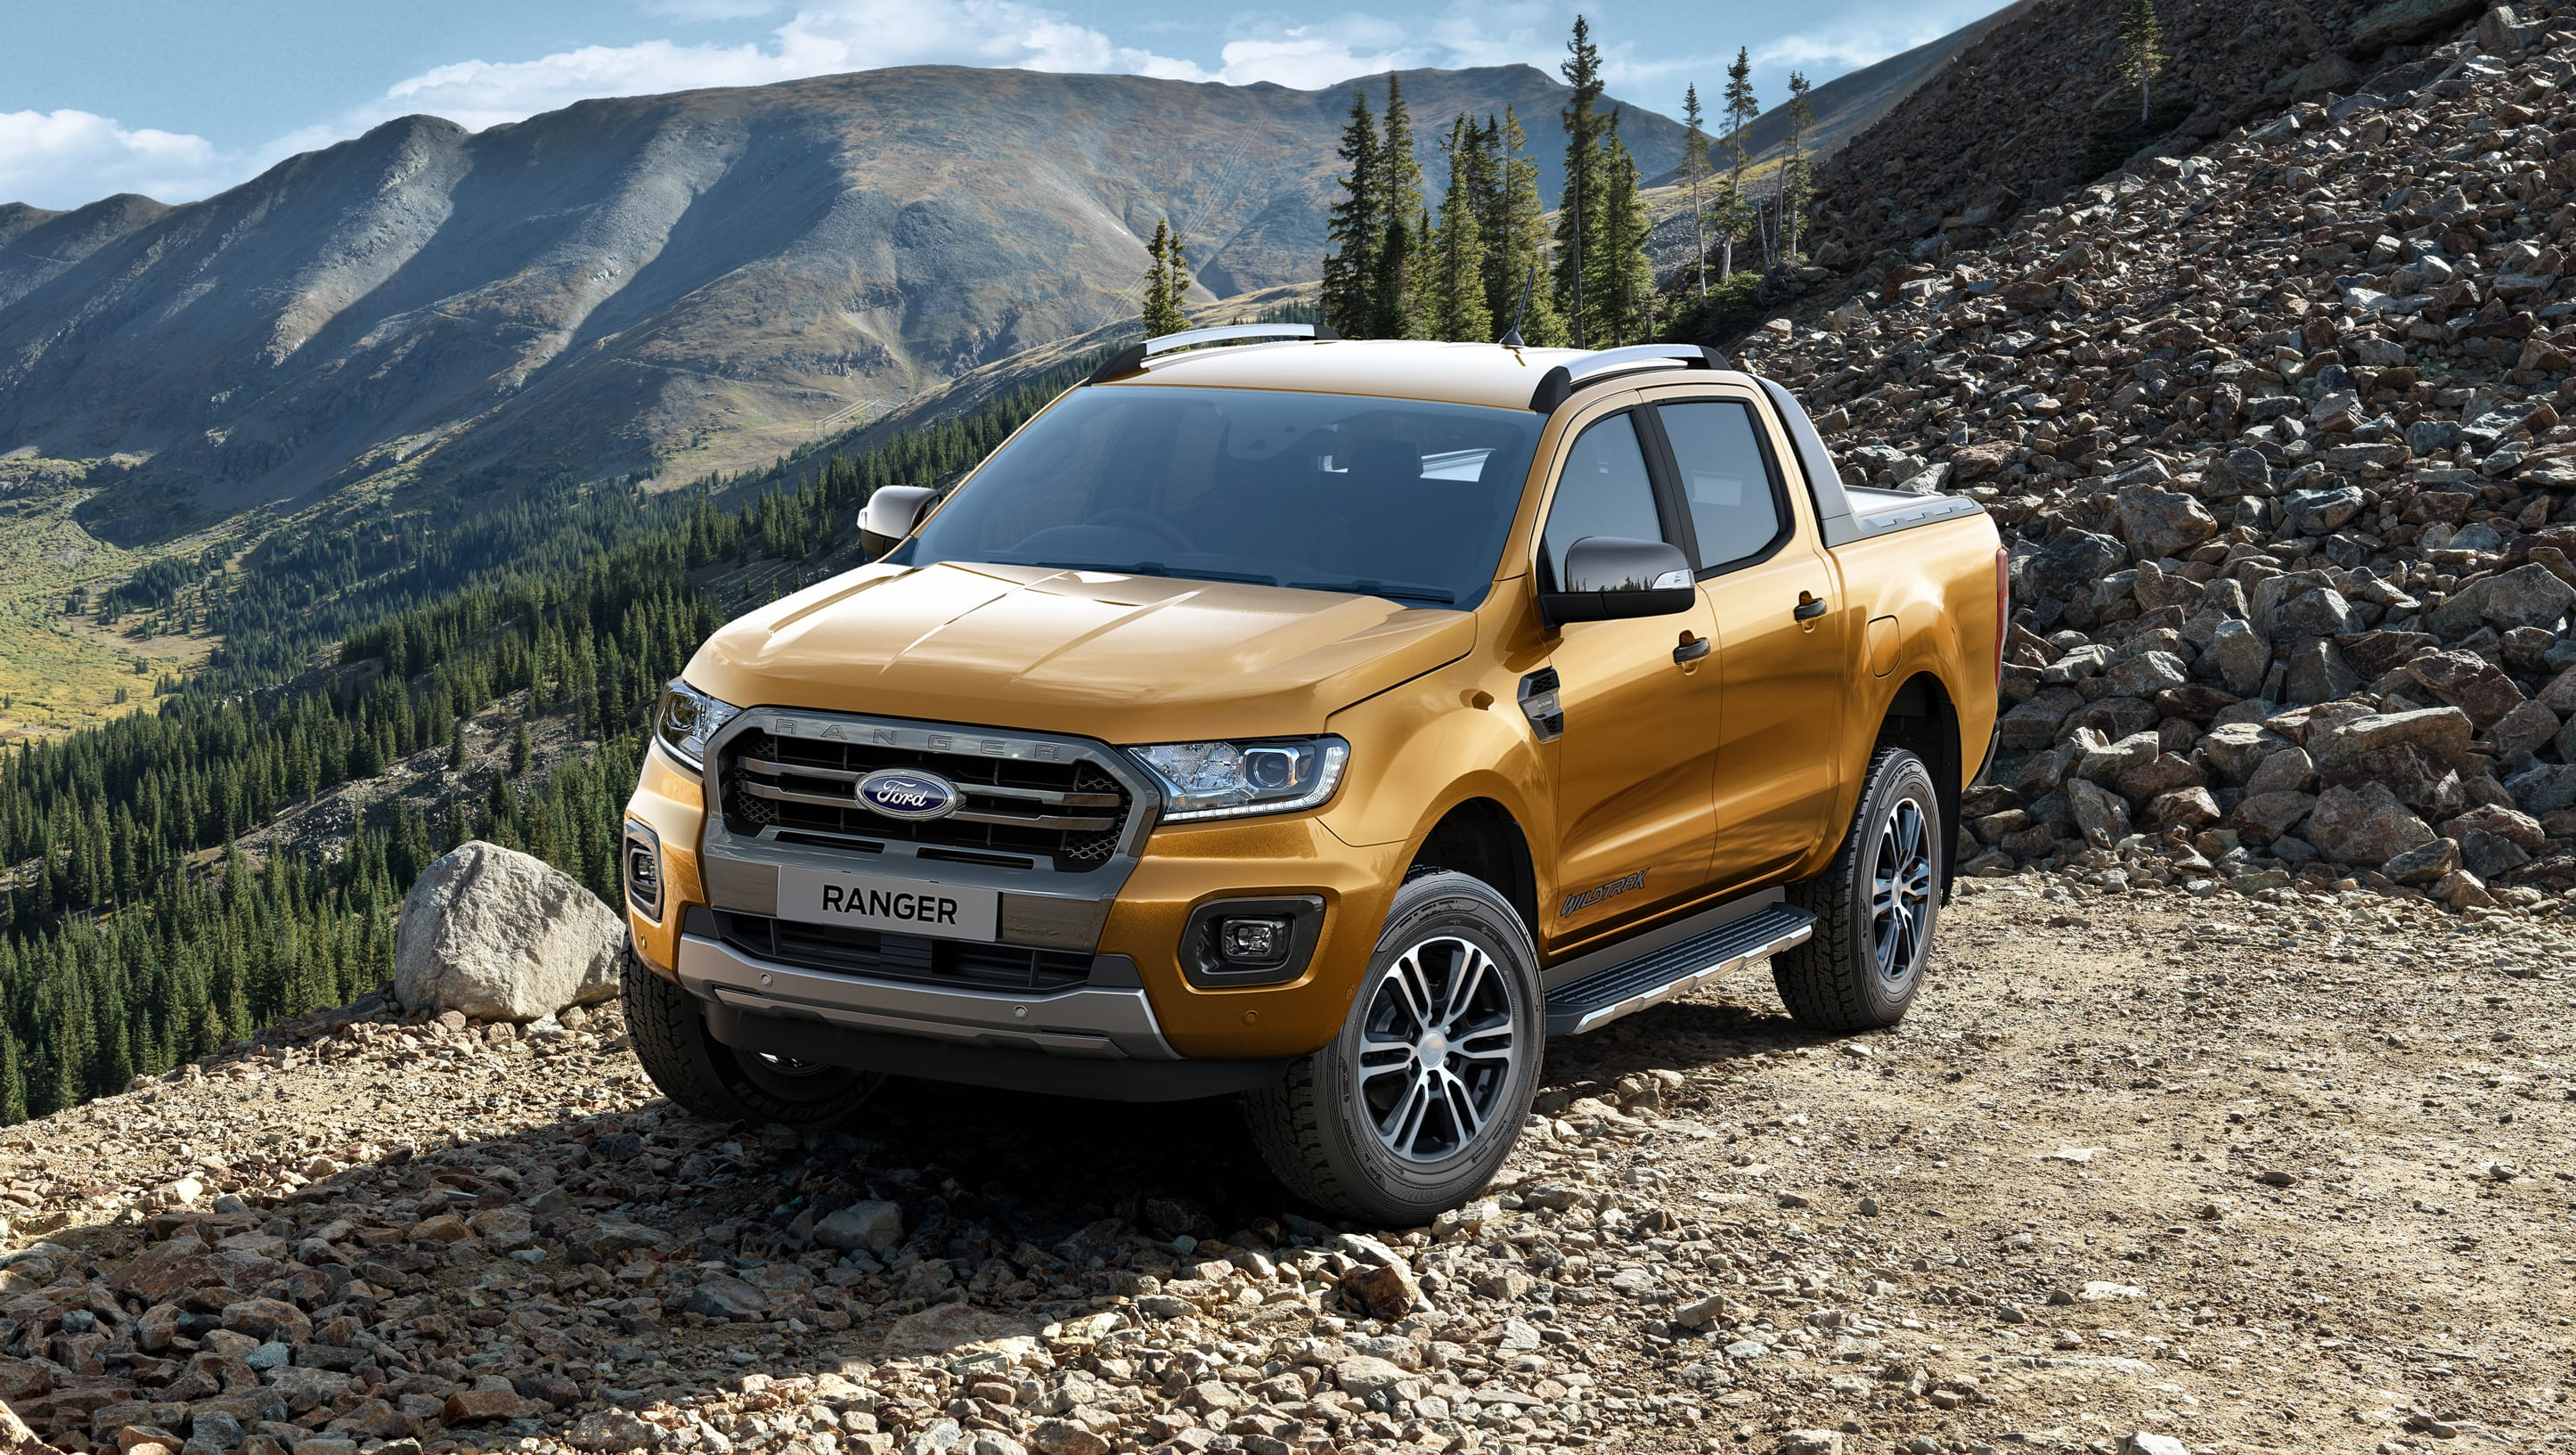 Ford Ranger 2020 Pricing And Spec Confirmed Key Changes For Hilux Main Rival Car News Carsguide